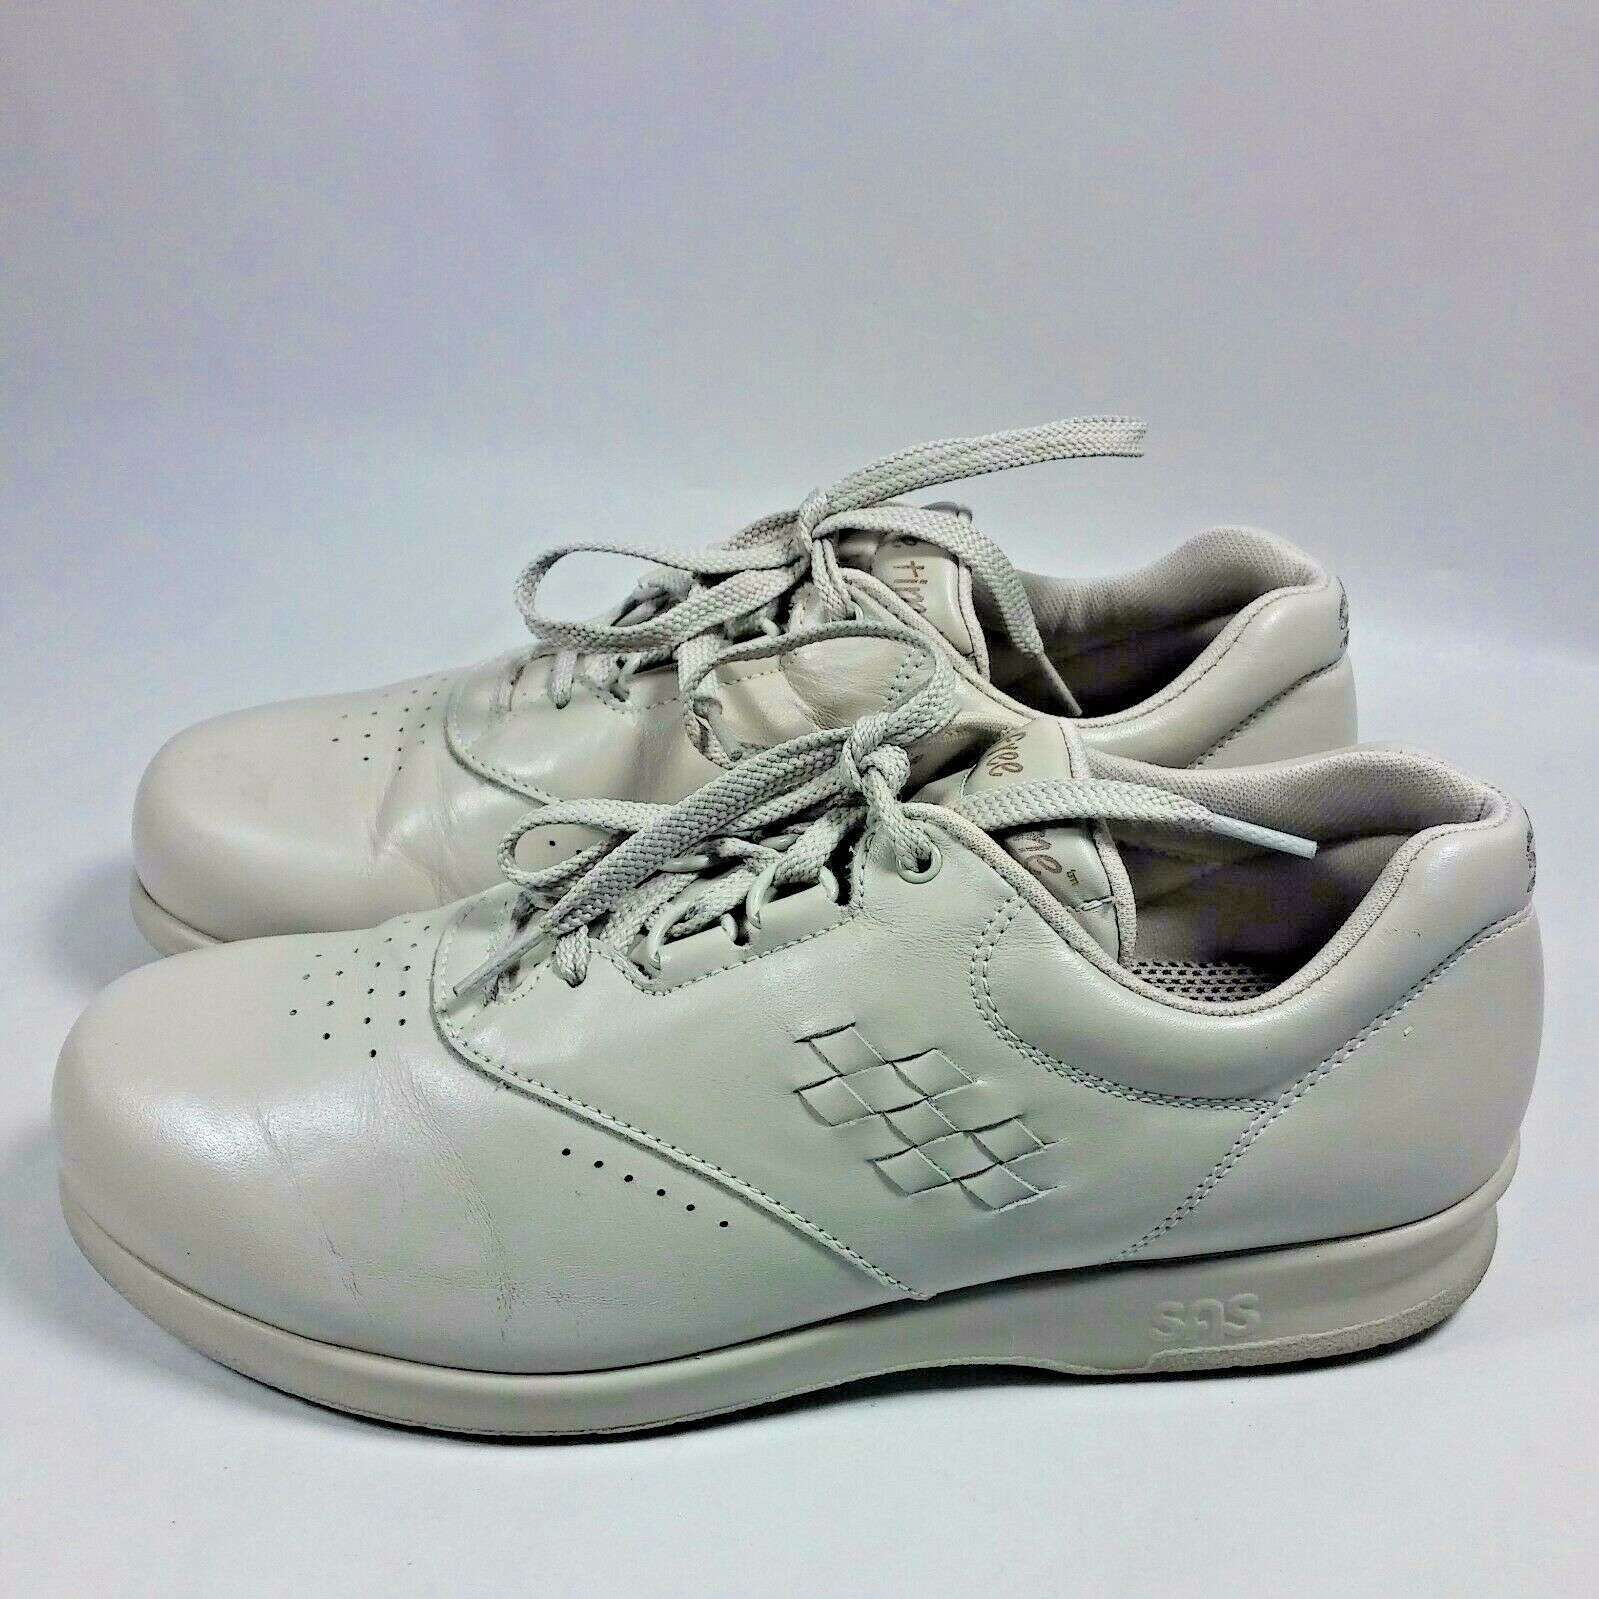 NICE Women's SAS Free Time Comfort Walking shoes-Beige Leather-USA MADE-8.5 N